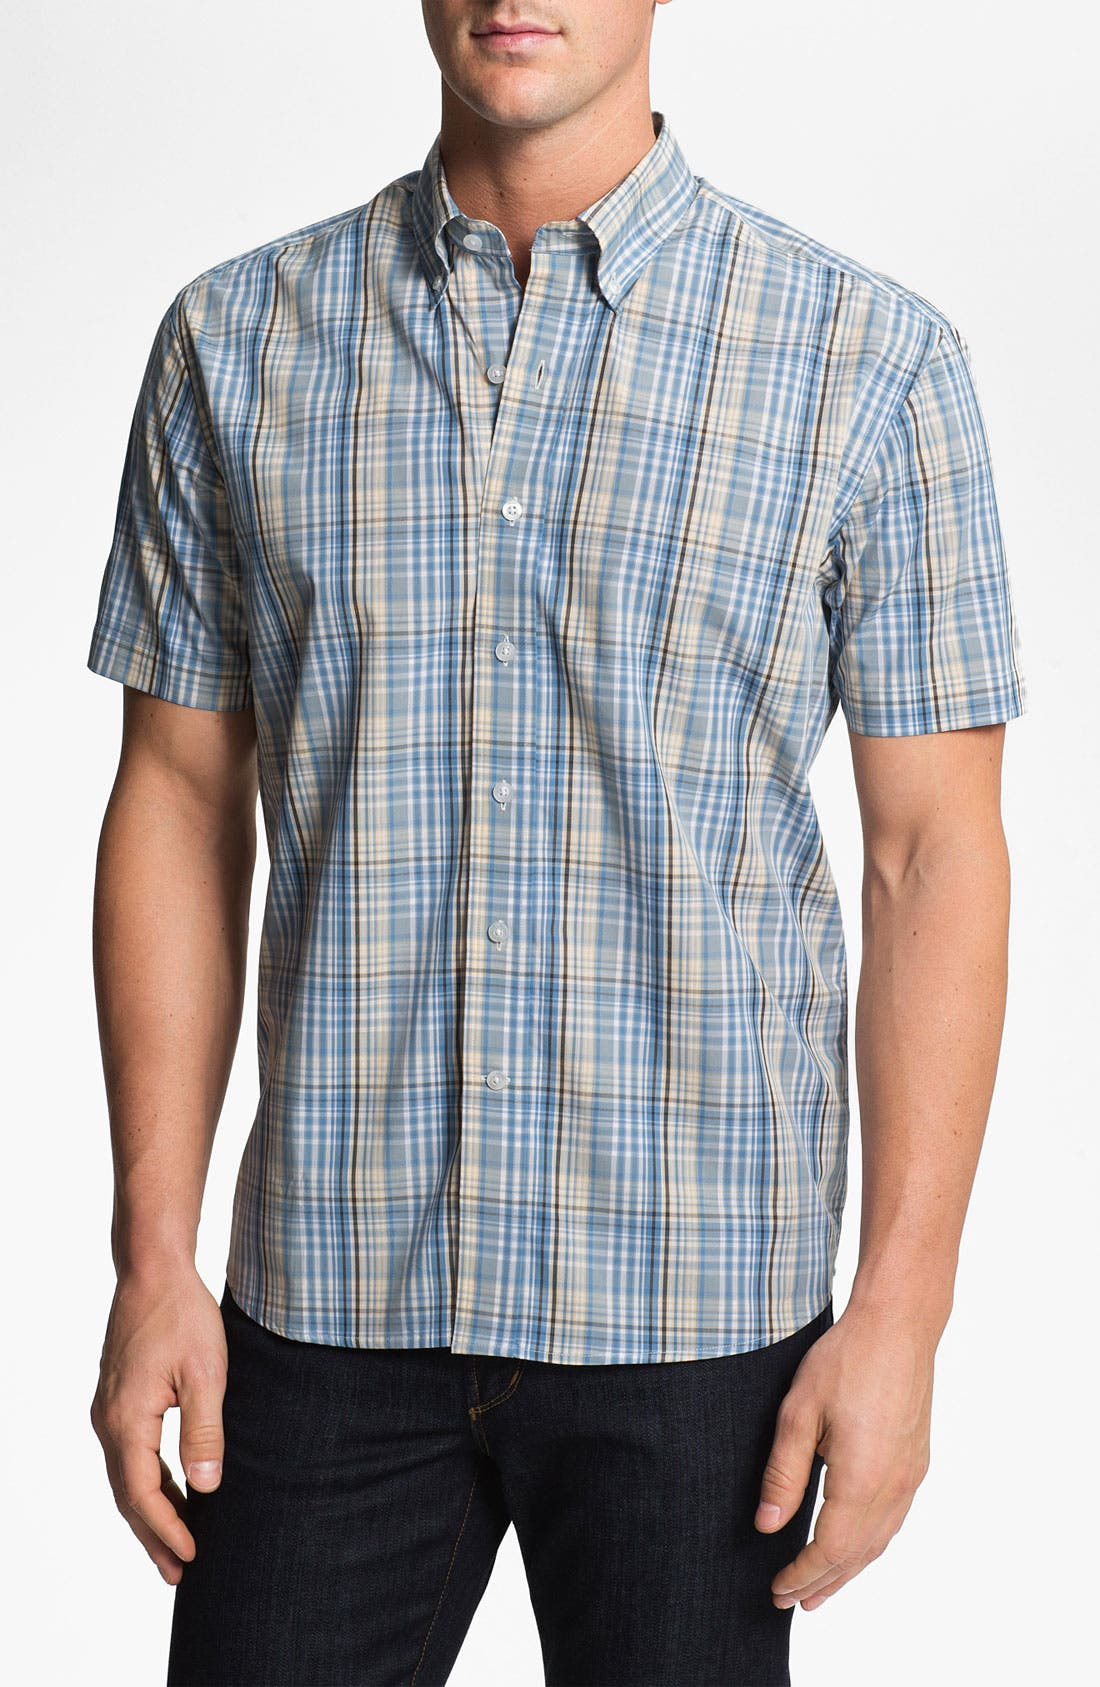 Alternate Image 1 Selected - Cutter & Buck 'Leary' Plaid Sport Shirt